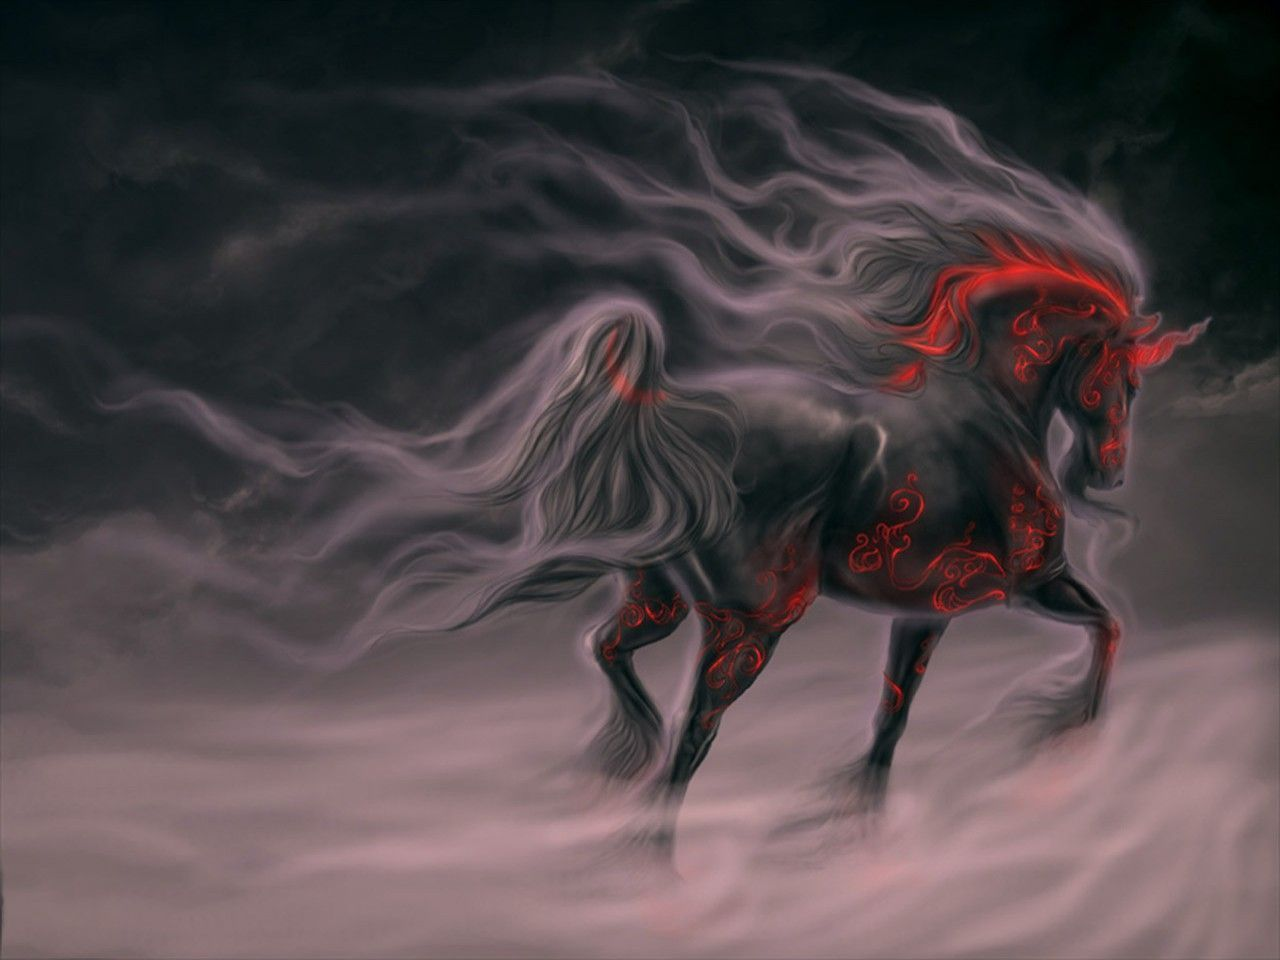 Hd wallpaper horse - Horse Wallpapers Android Apps On Google Play